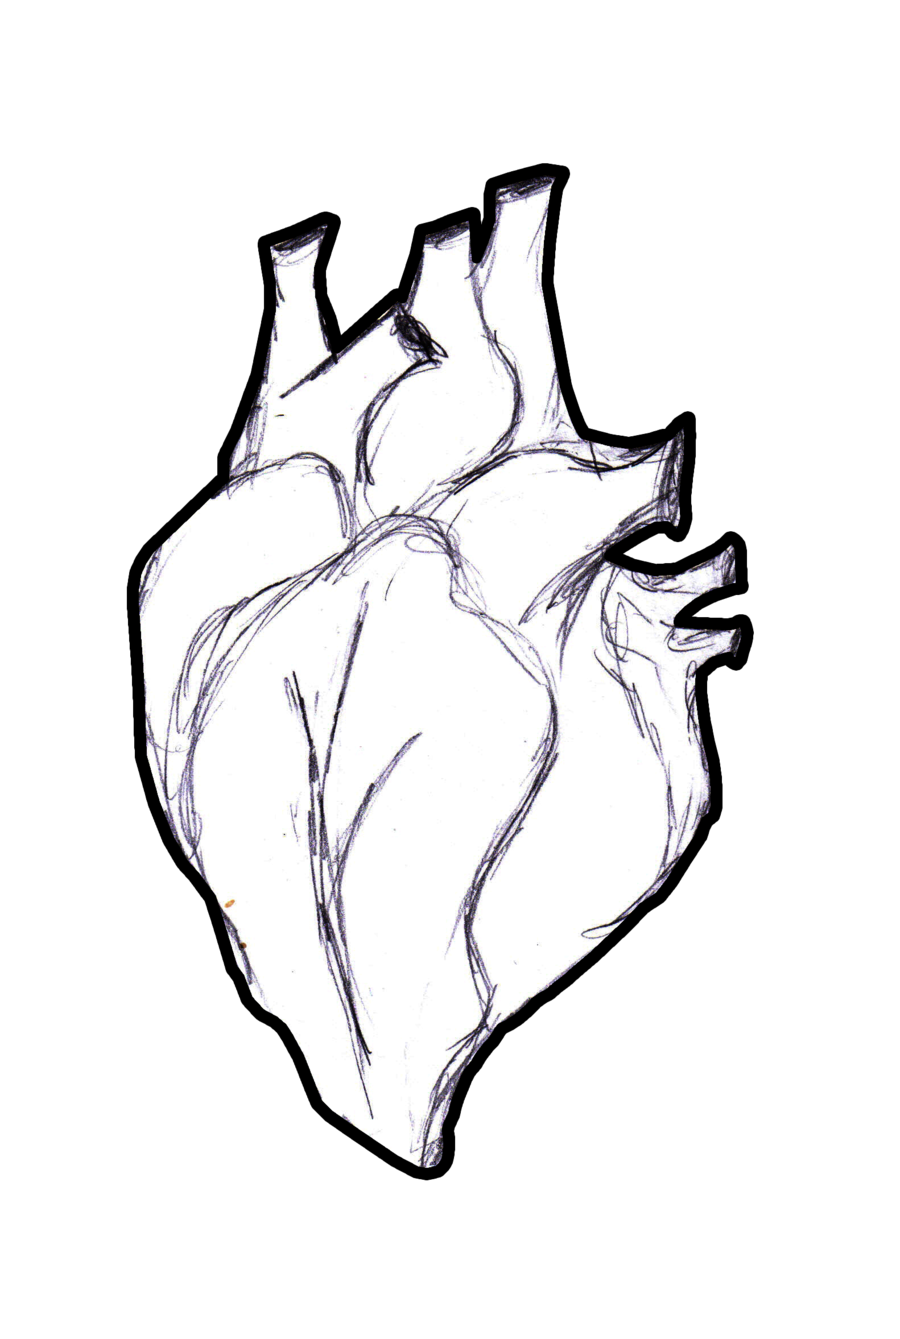 Human heart clipart black and white image black and white stock Human Heart Drawing Outline at GetDrawings.com   Free for personal ... image black and white stock